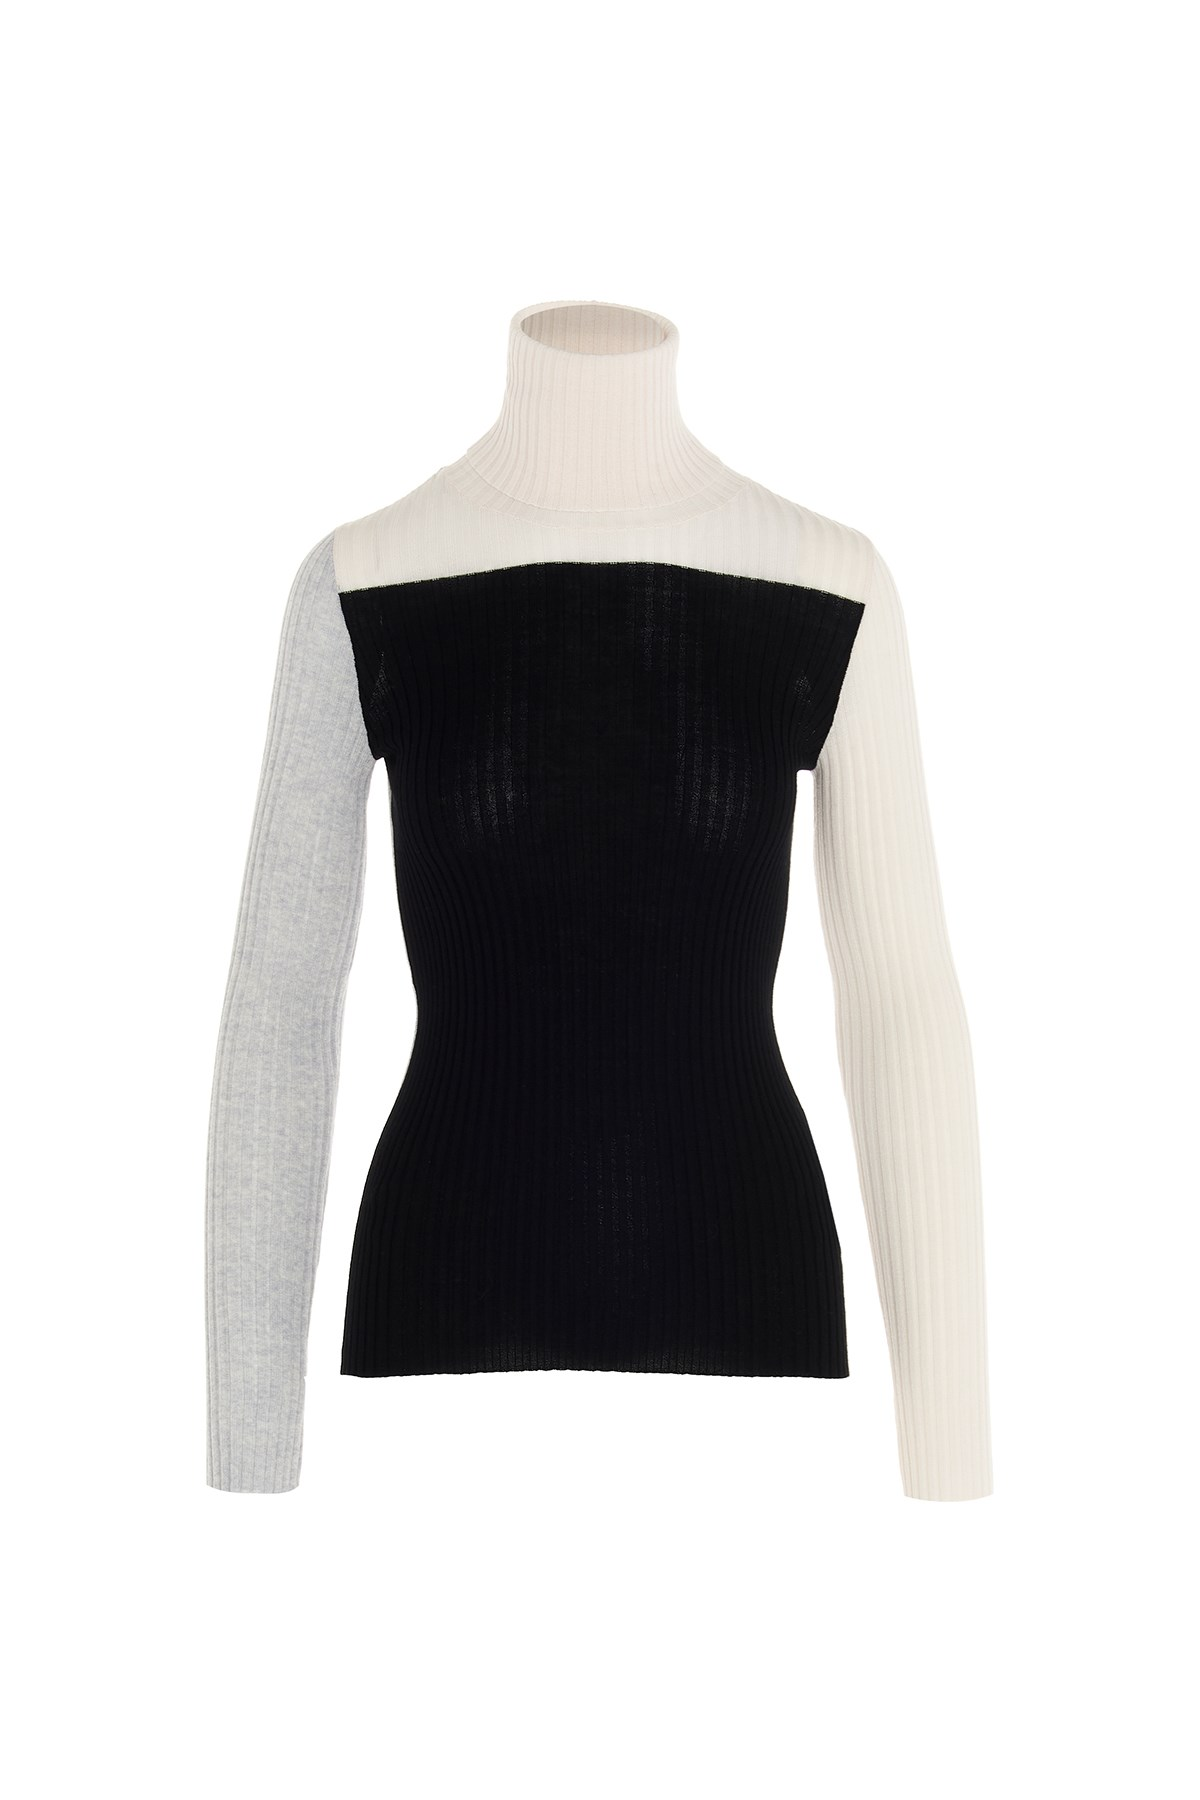 Nude Ribbed Wool Sweater Available On Www Julian Fashion Com 136983 Fr